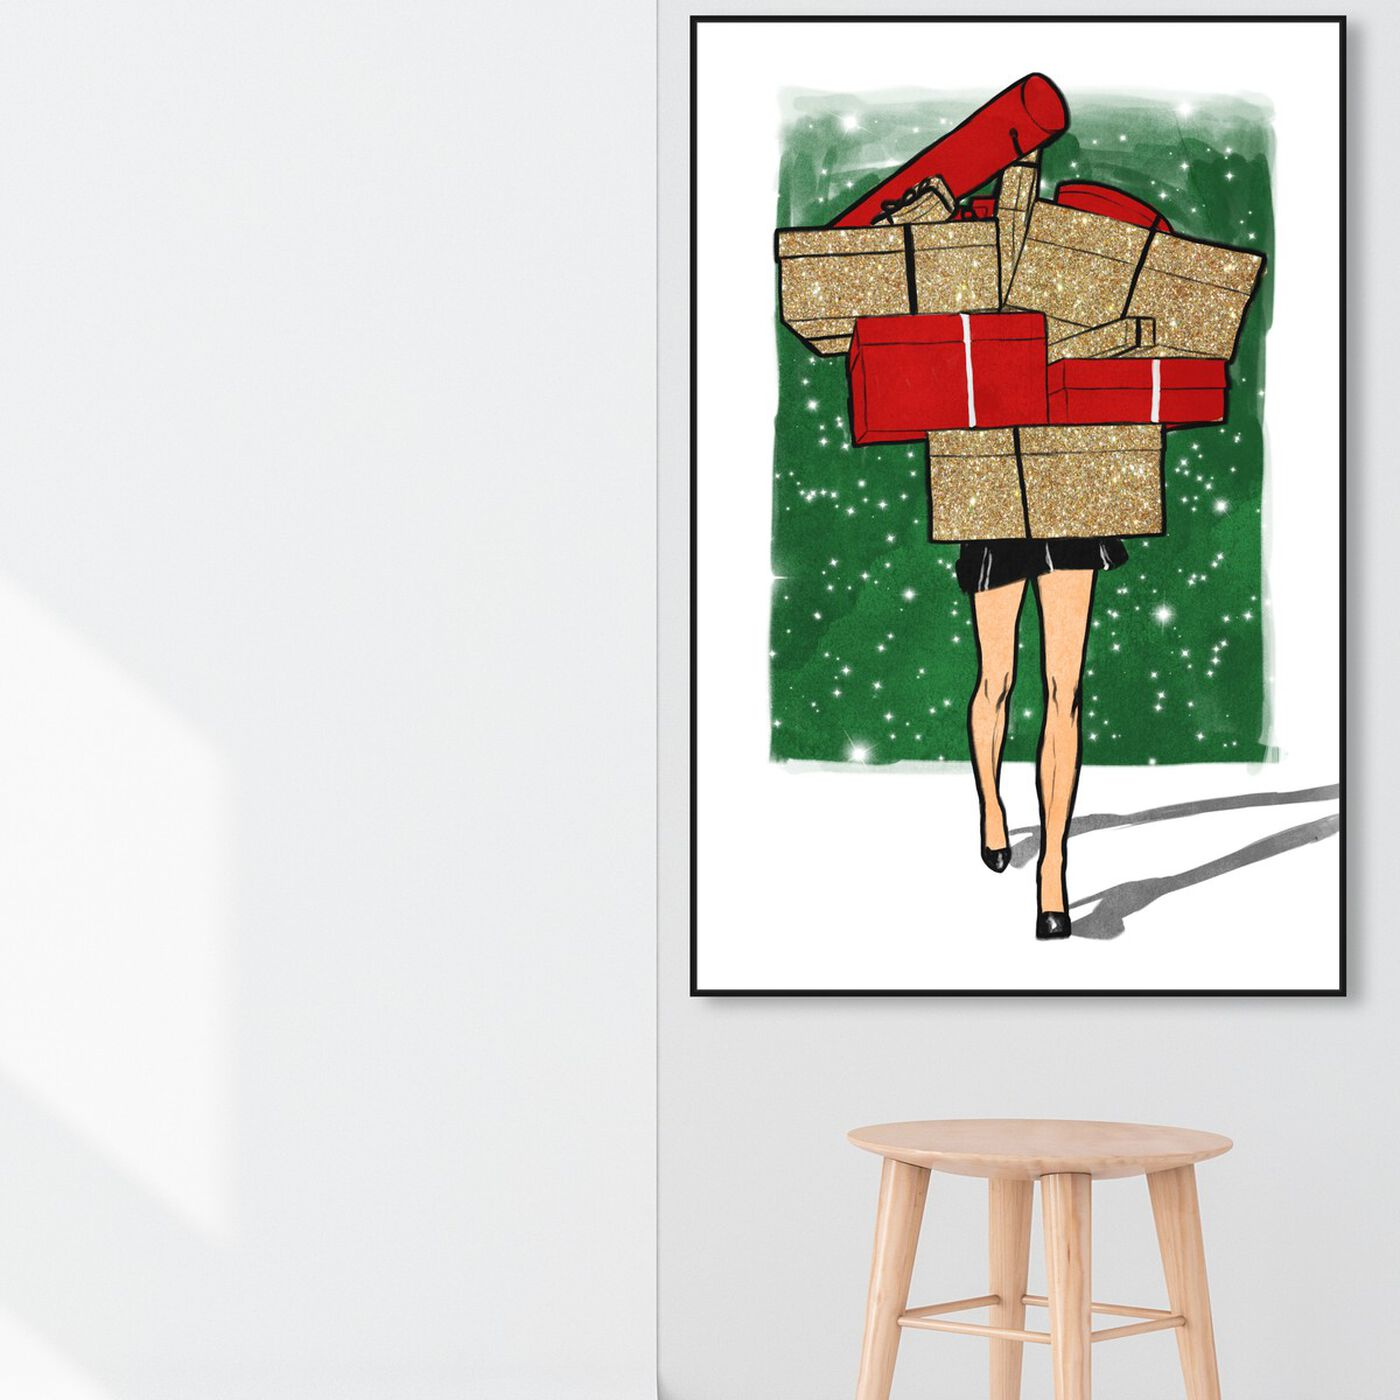 Hanging view of Holiday Gifts Overload featuring fashion and glam and dress art.